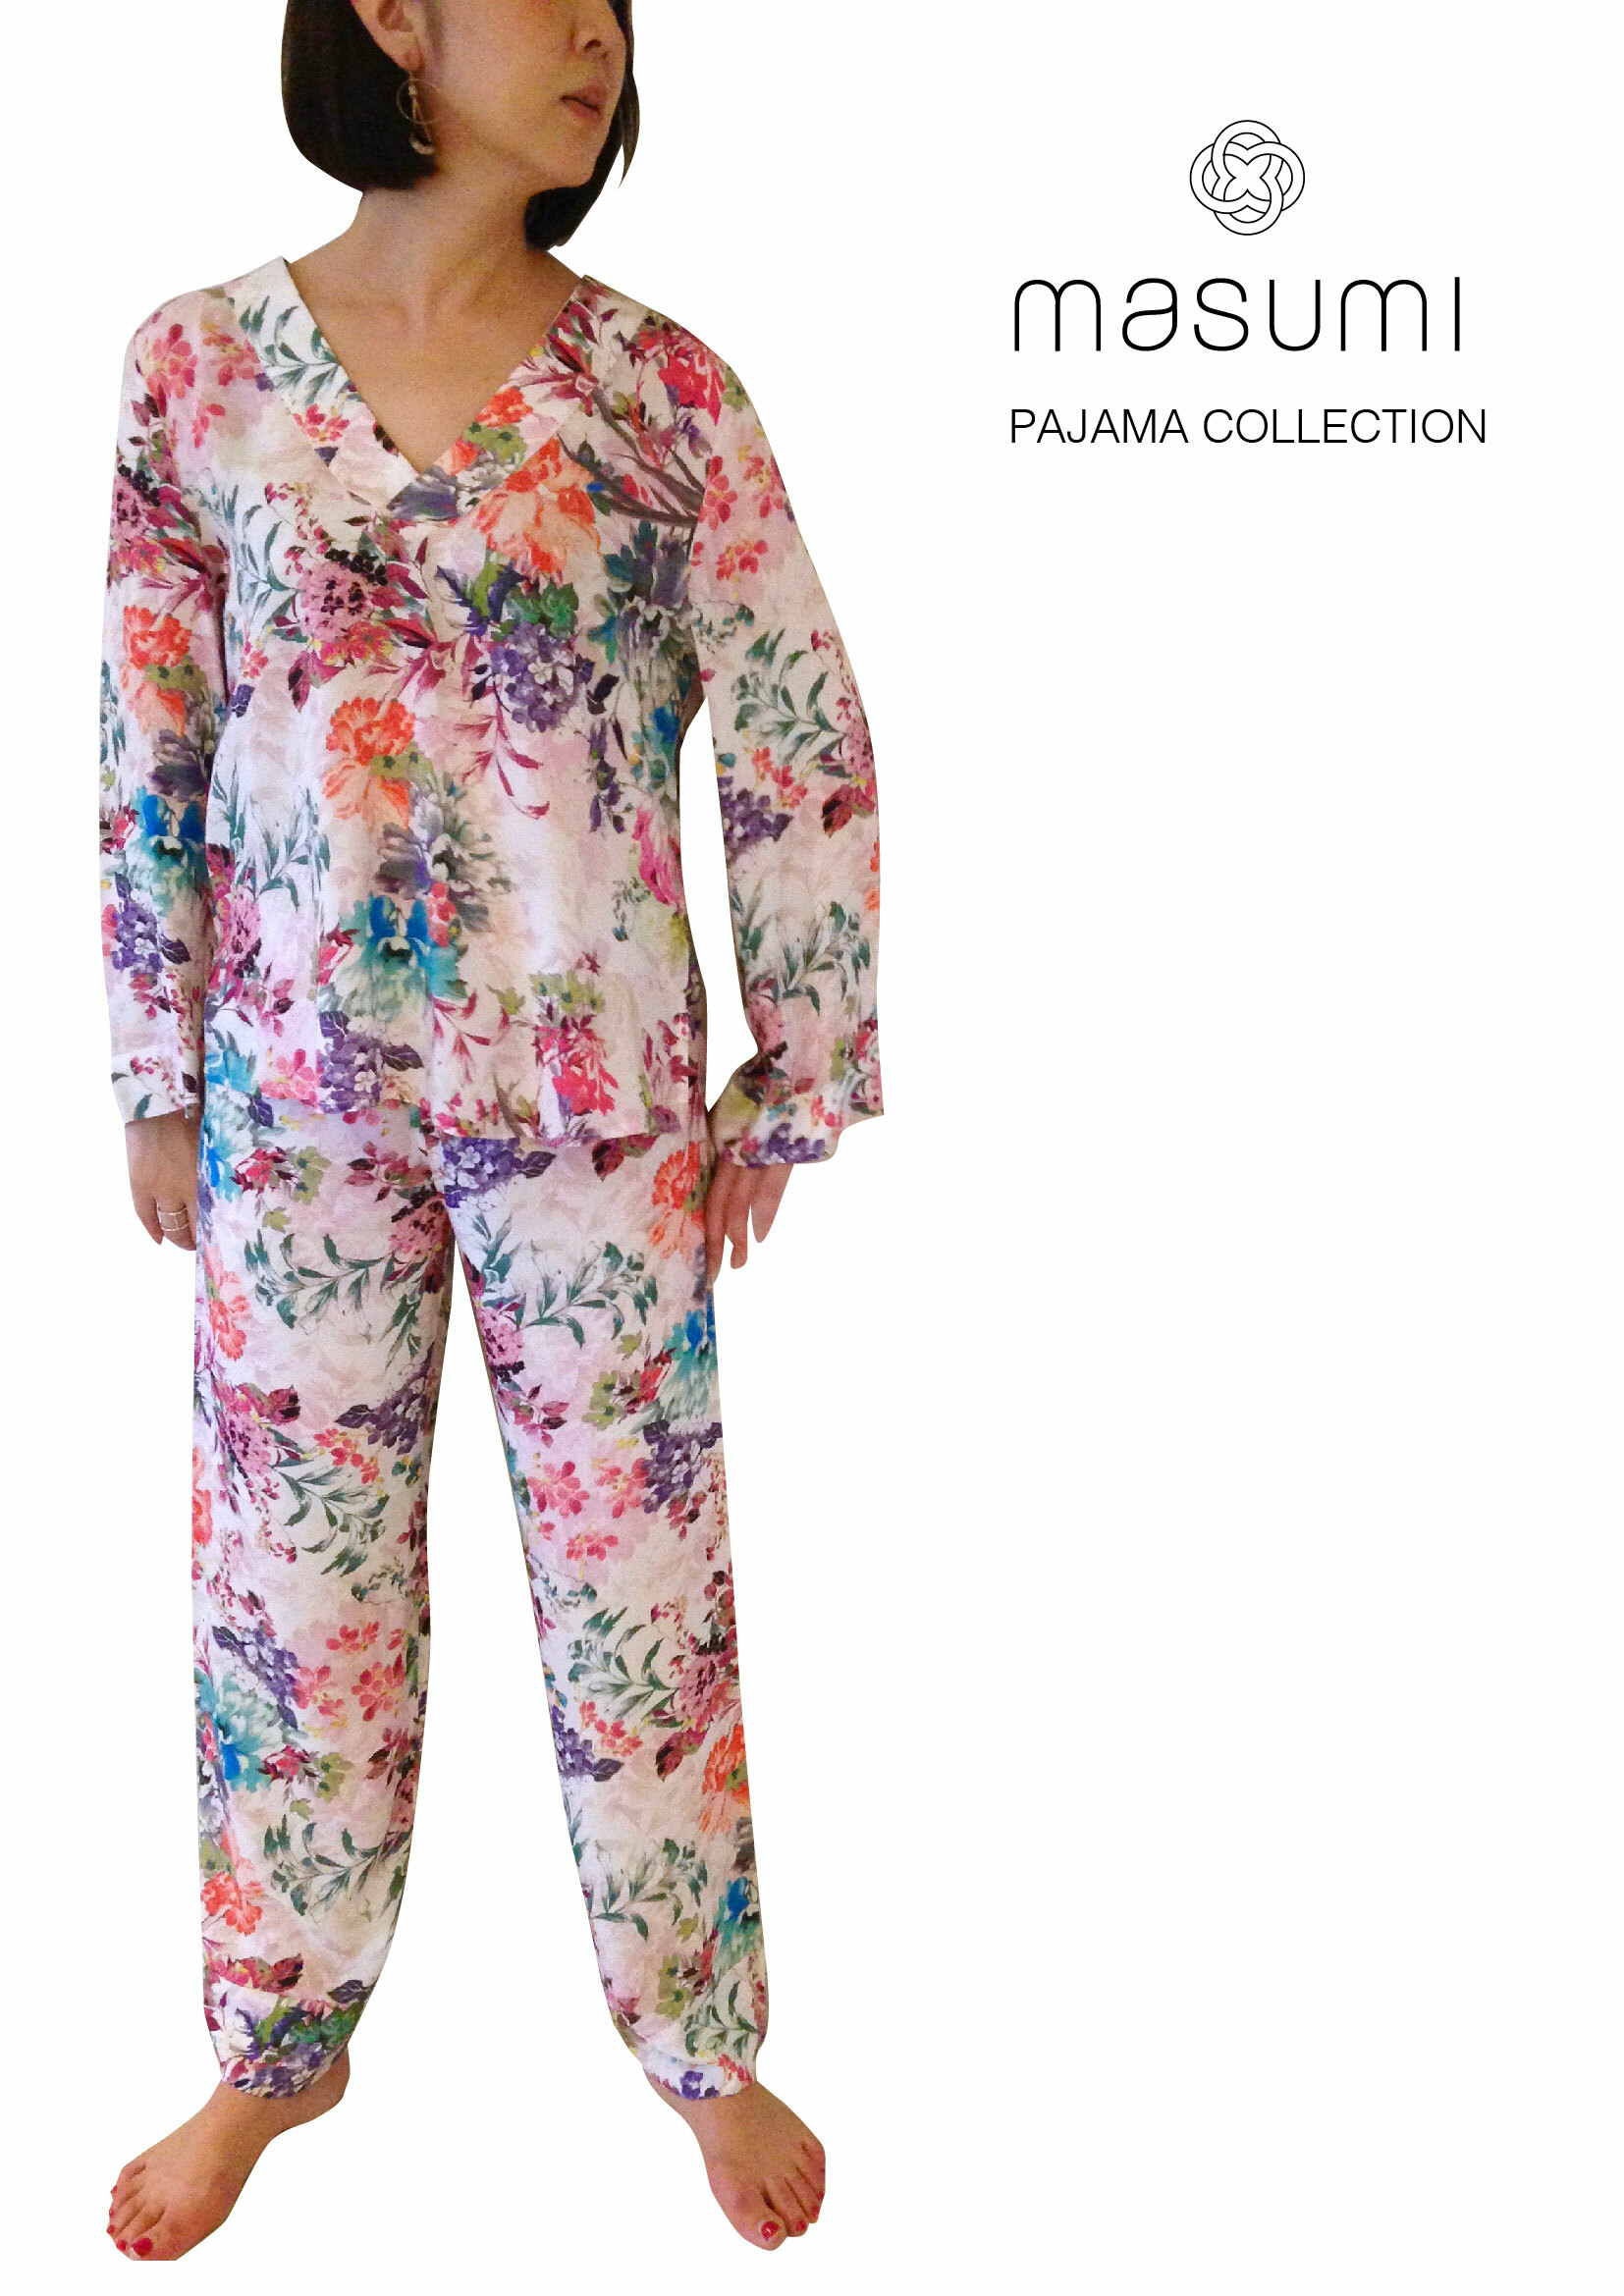 Pajama set up Holiday Provance  パジャマセットアップ ホリデープロヴァンス